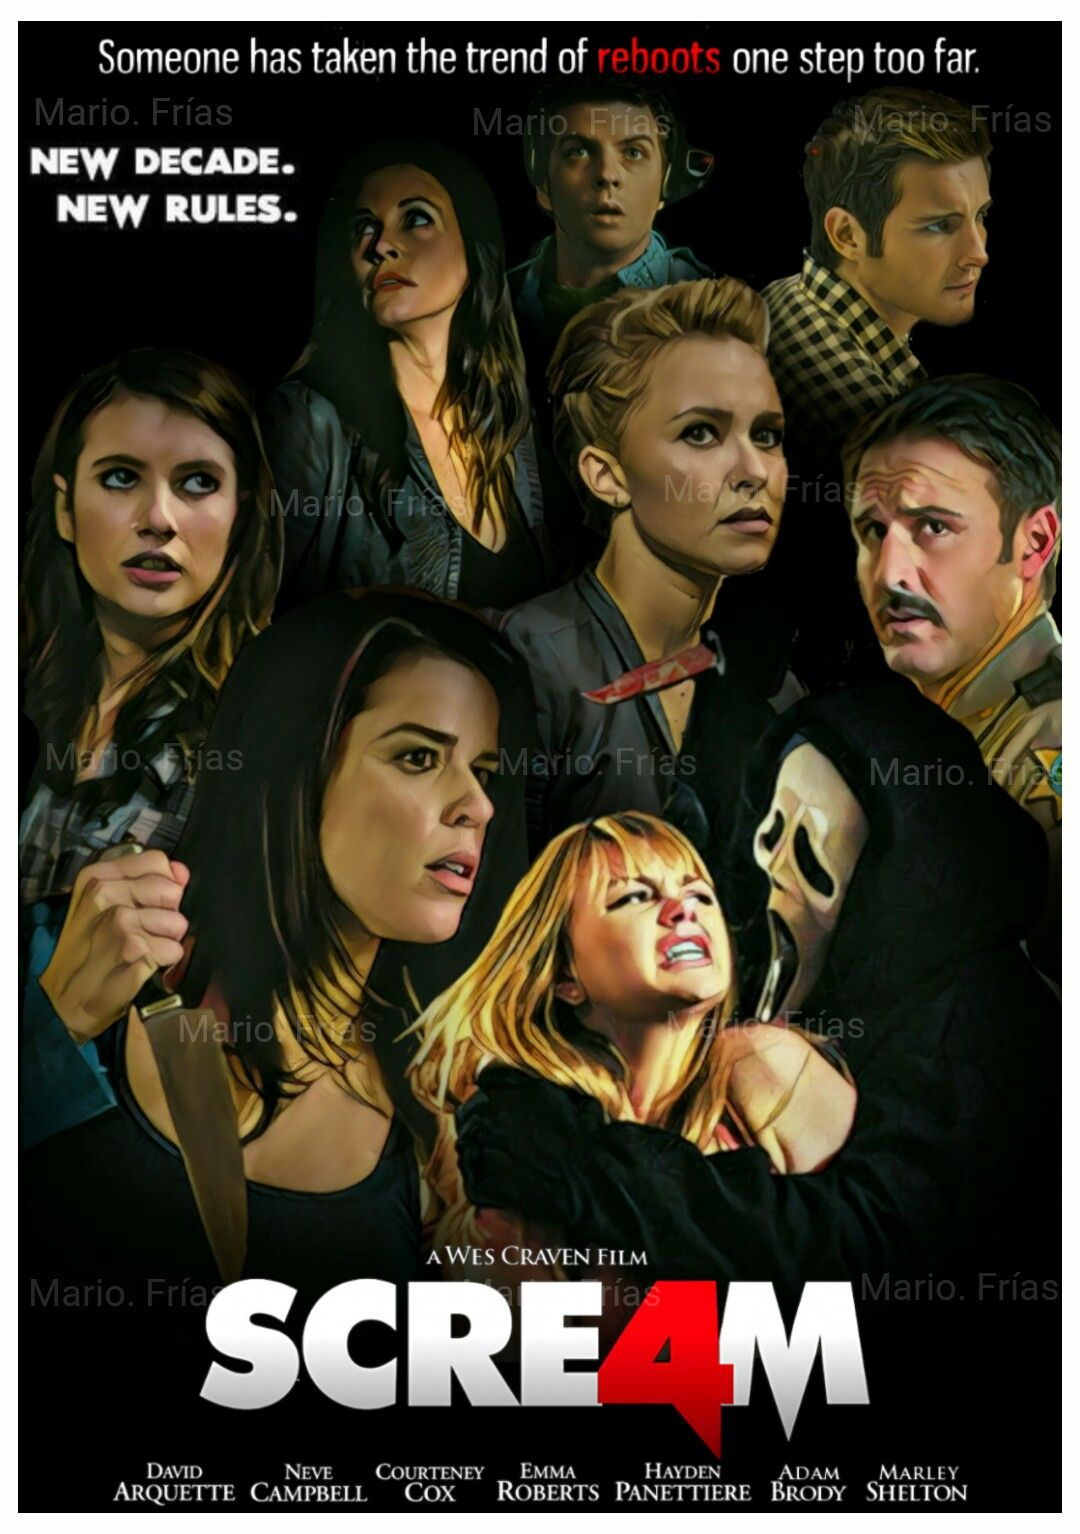 Scream 4 (2011) Hindi Dual Audio 720p BluRay 800MB Download